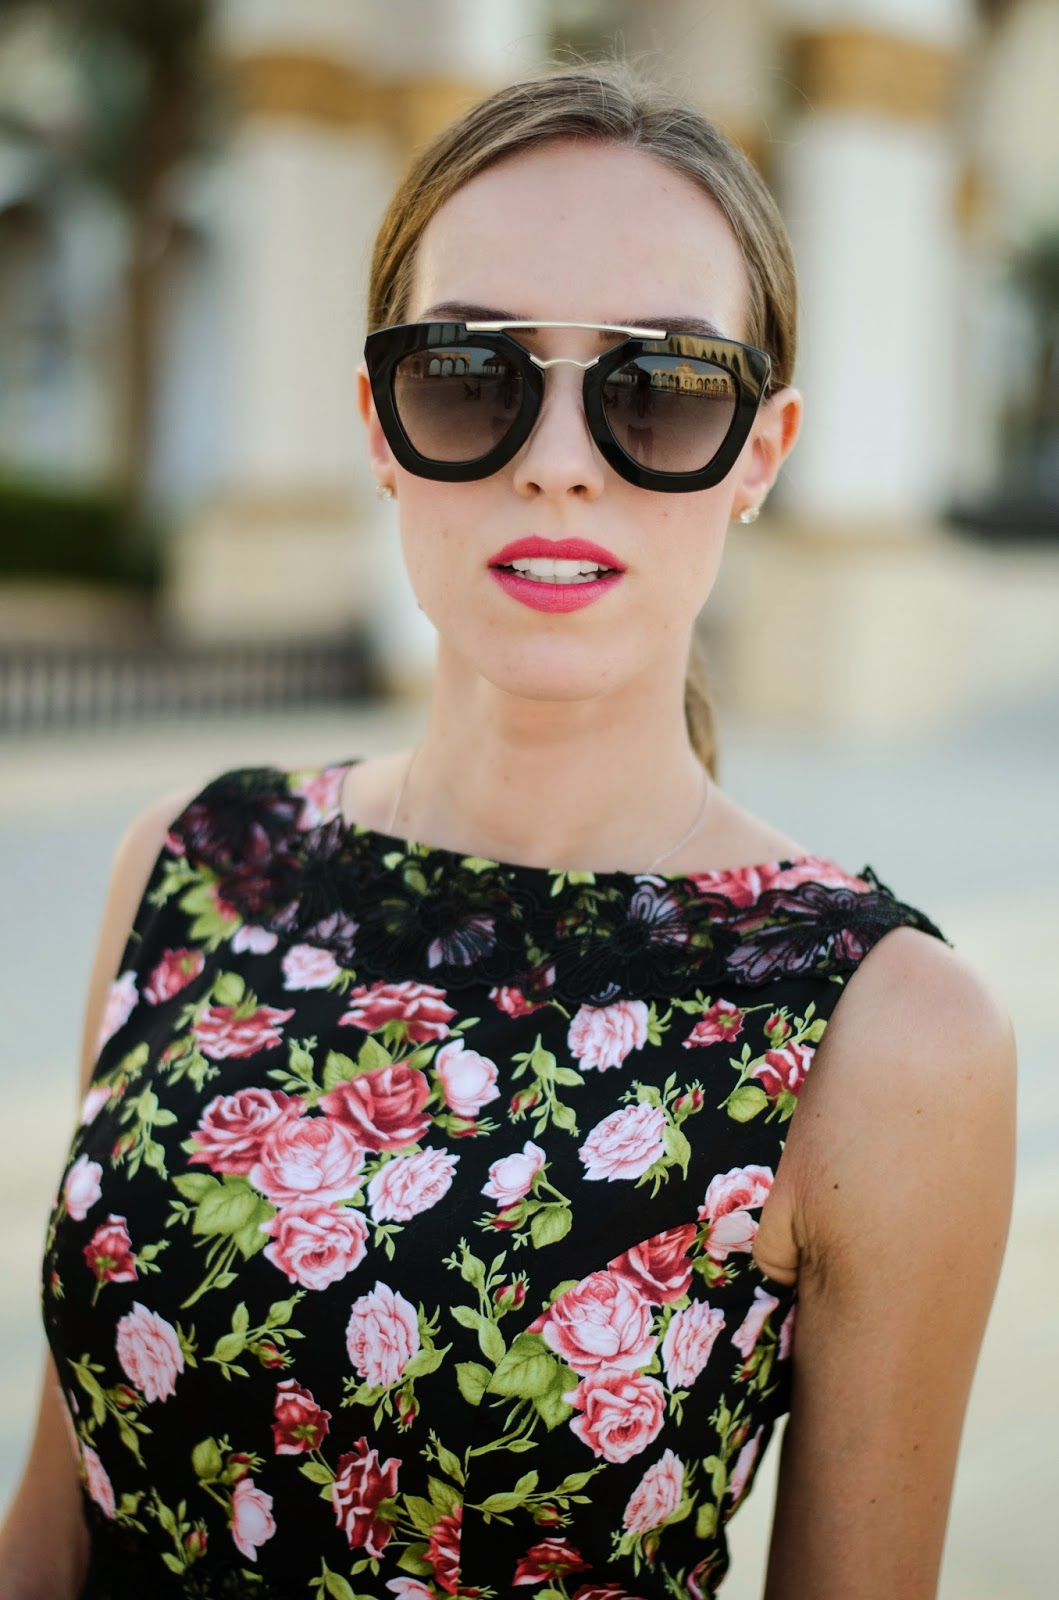 kristjaana mere floral maxi dress prada cinema sunglasses